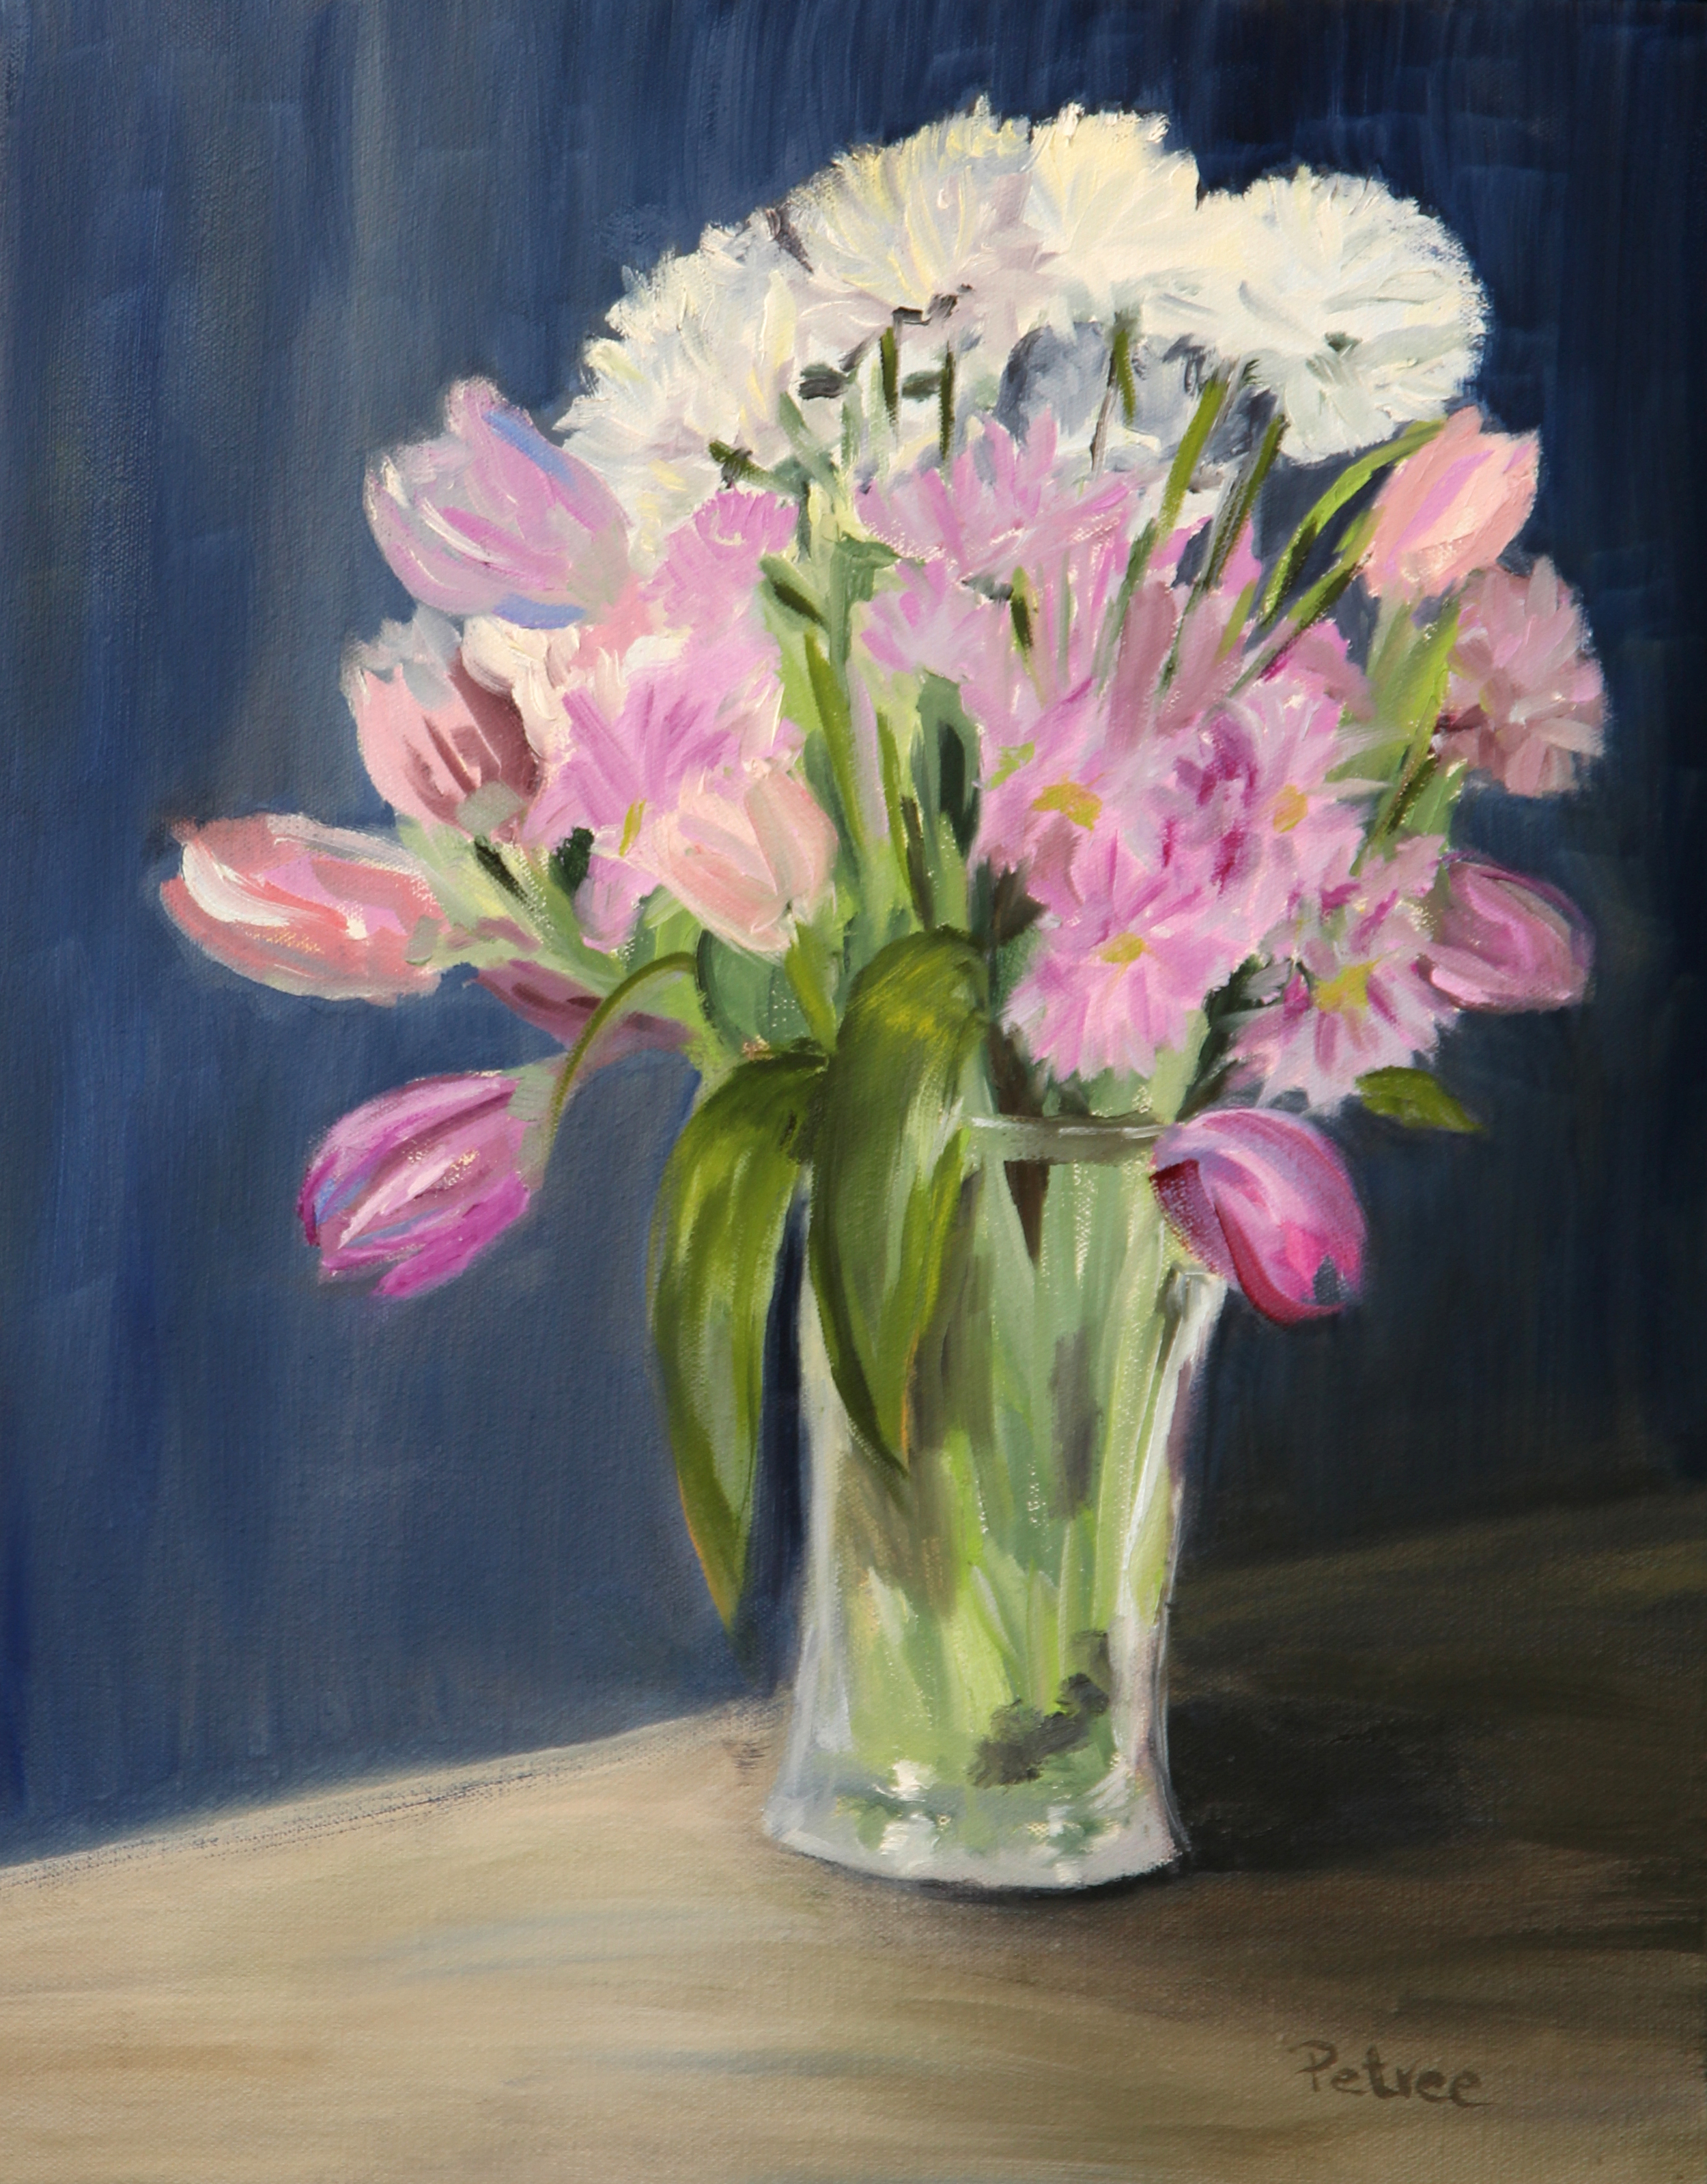 Flower Bouquet, Oil on Canvas, 16 X 20